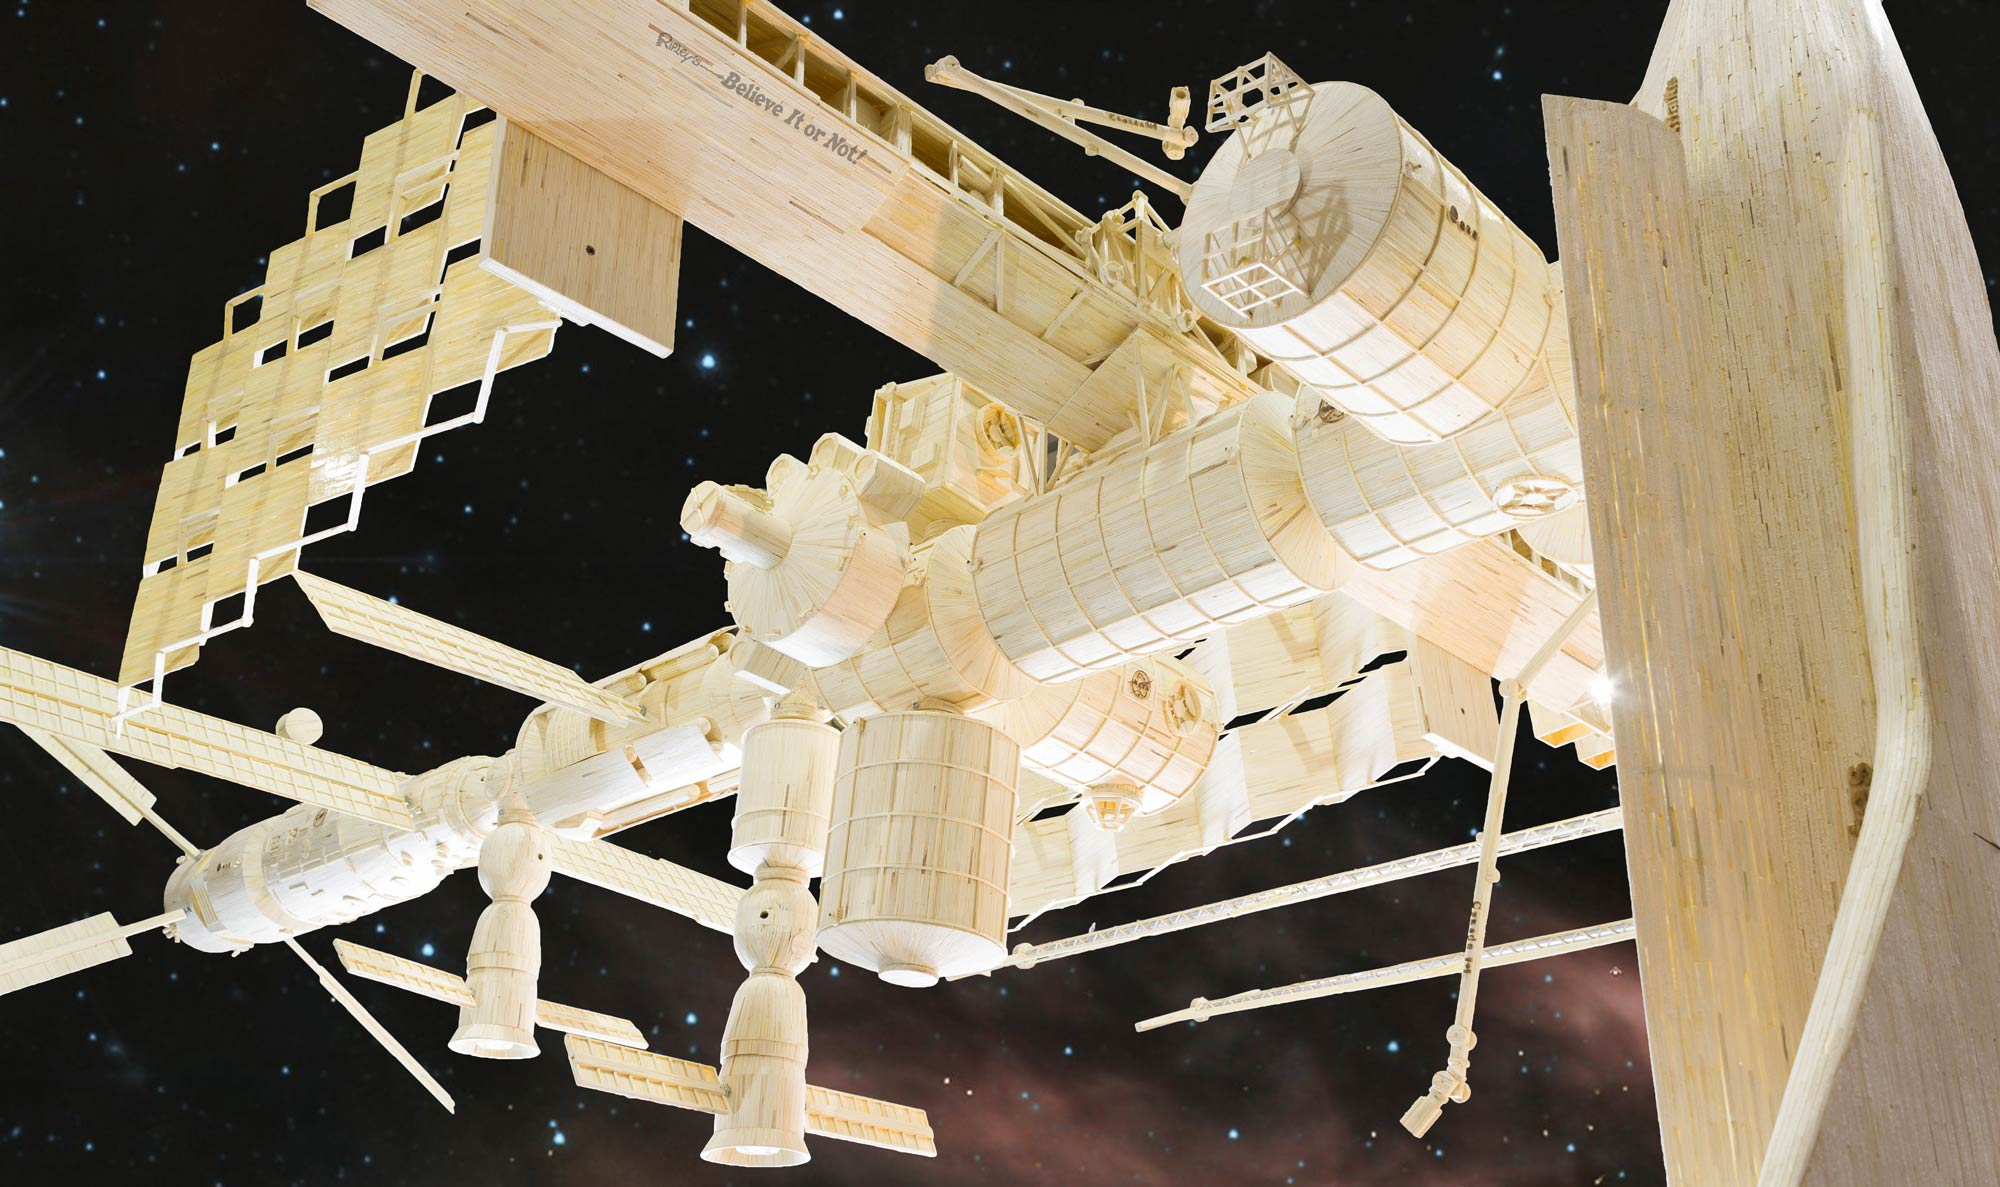 International Space Station Made of Matchsticks at Ripley's Believe It or Not